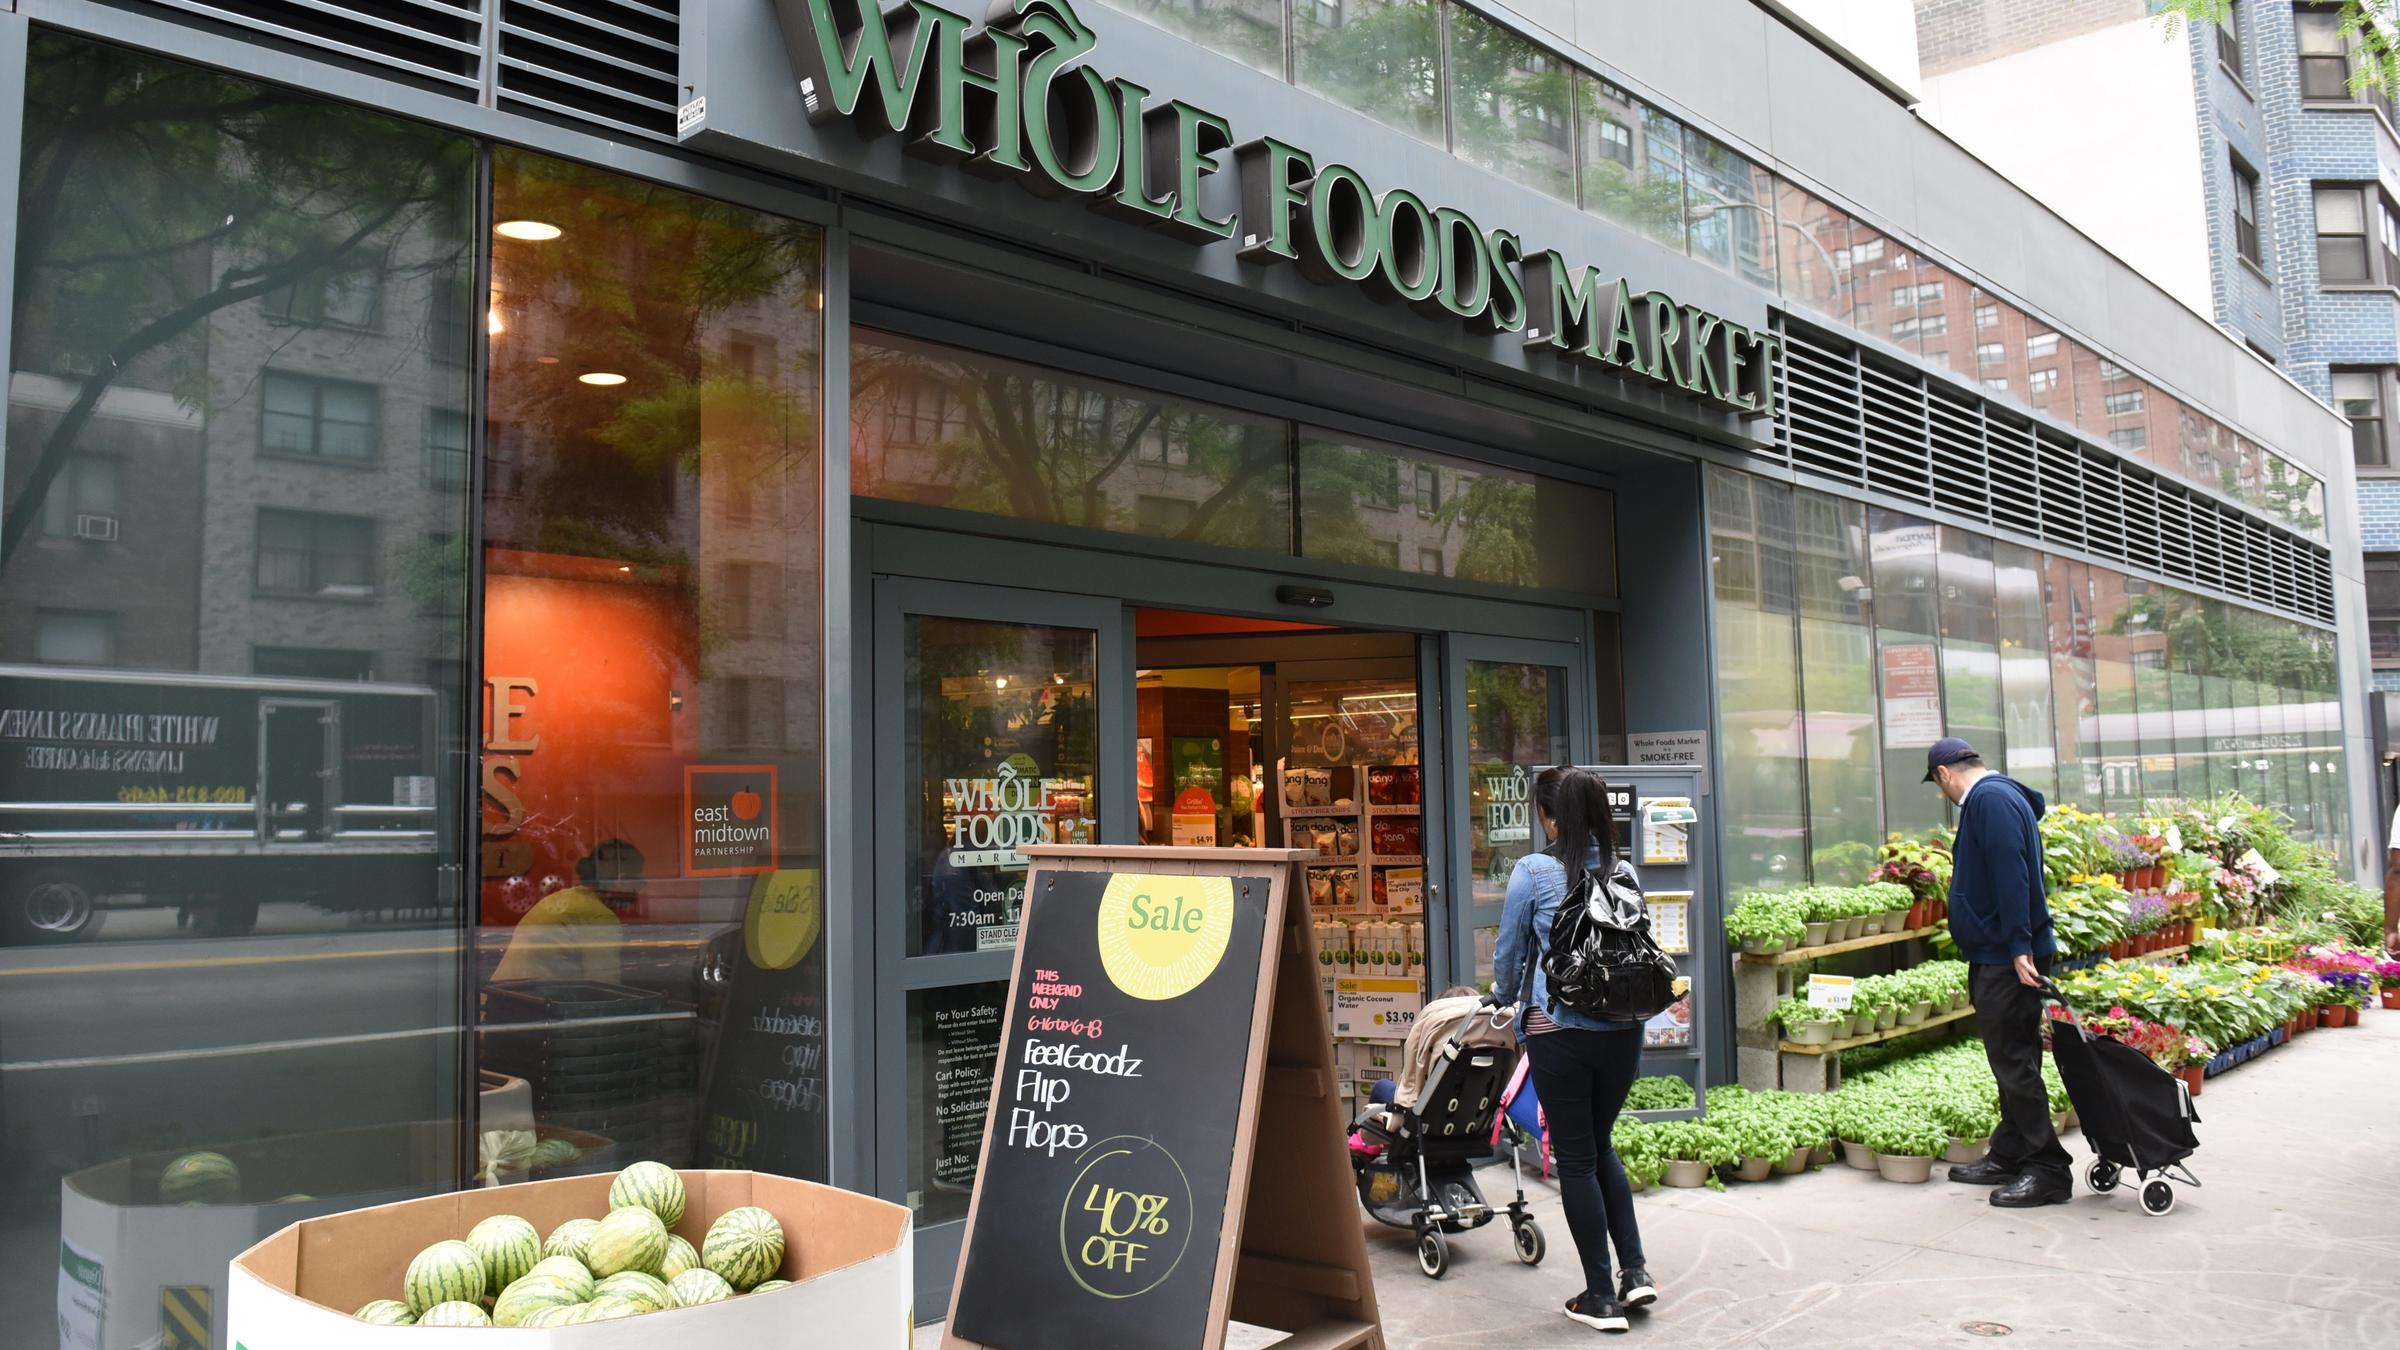 Whole Foods is about get cheaper for everyone starting Monday